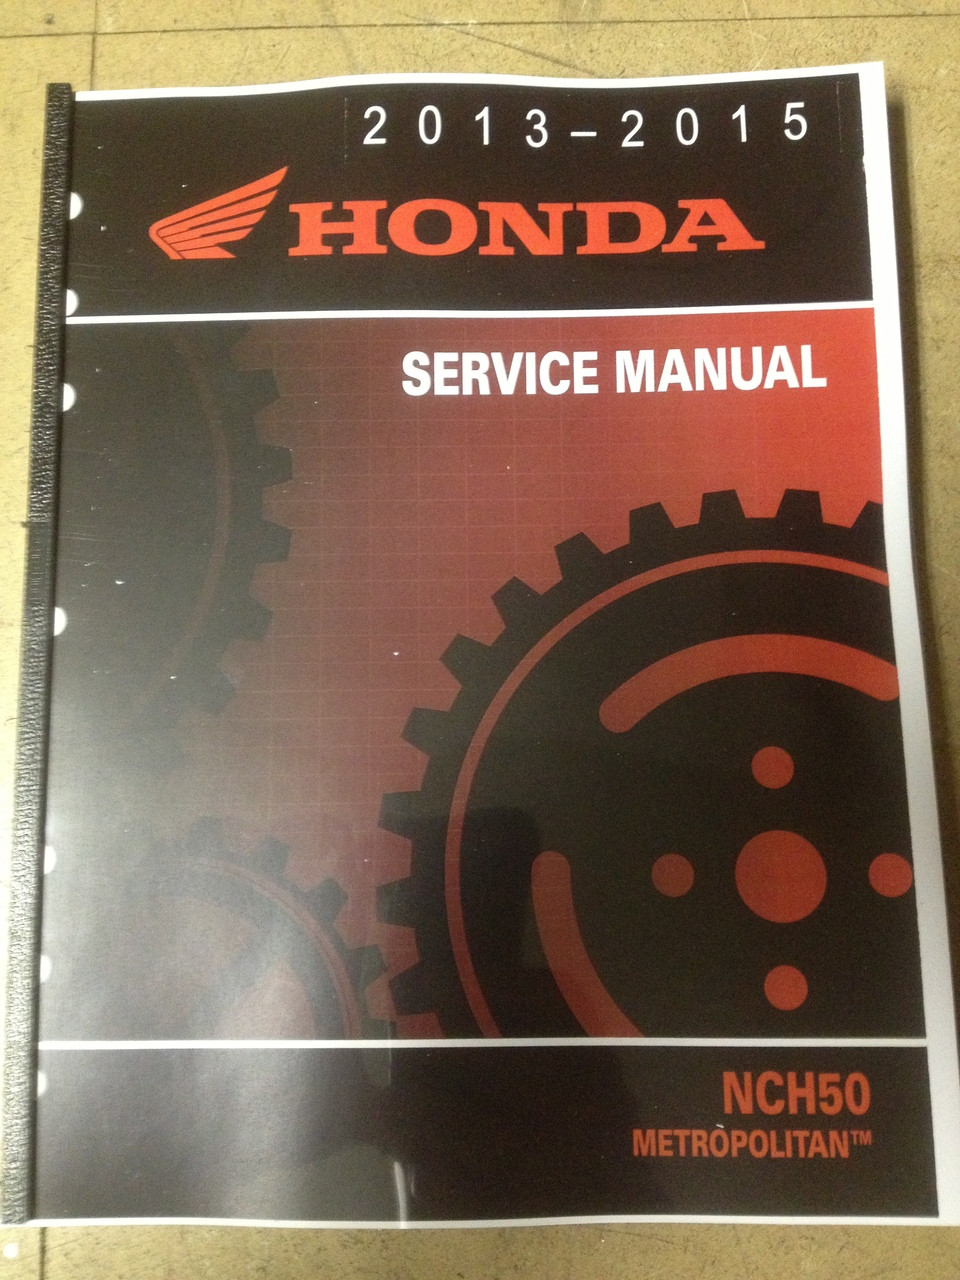 2013 2015 Honda Metropolitan Nch50 Part 61ggl02 Service Shop Repair Manual